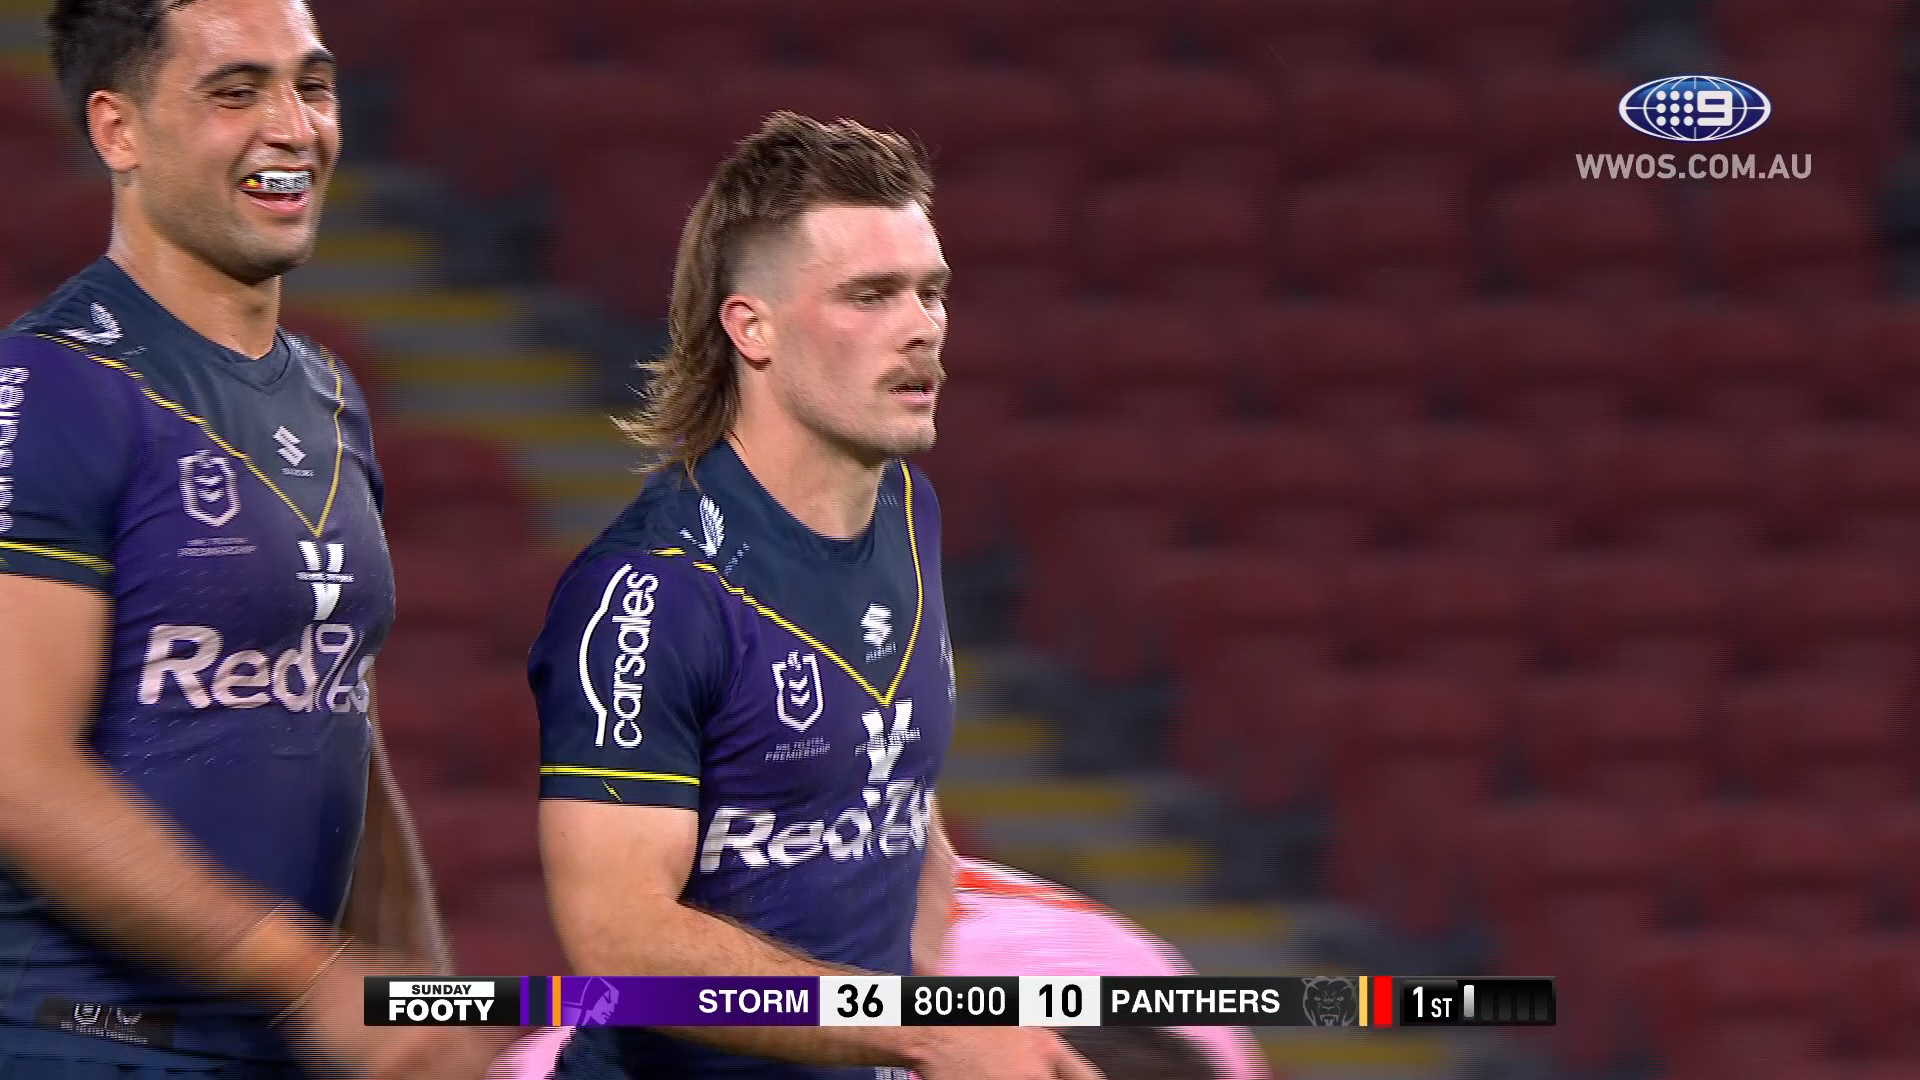 NRL Highlights: The Storm win easy in Grand Final rematch - Round 20